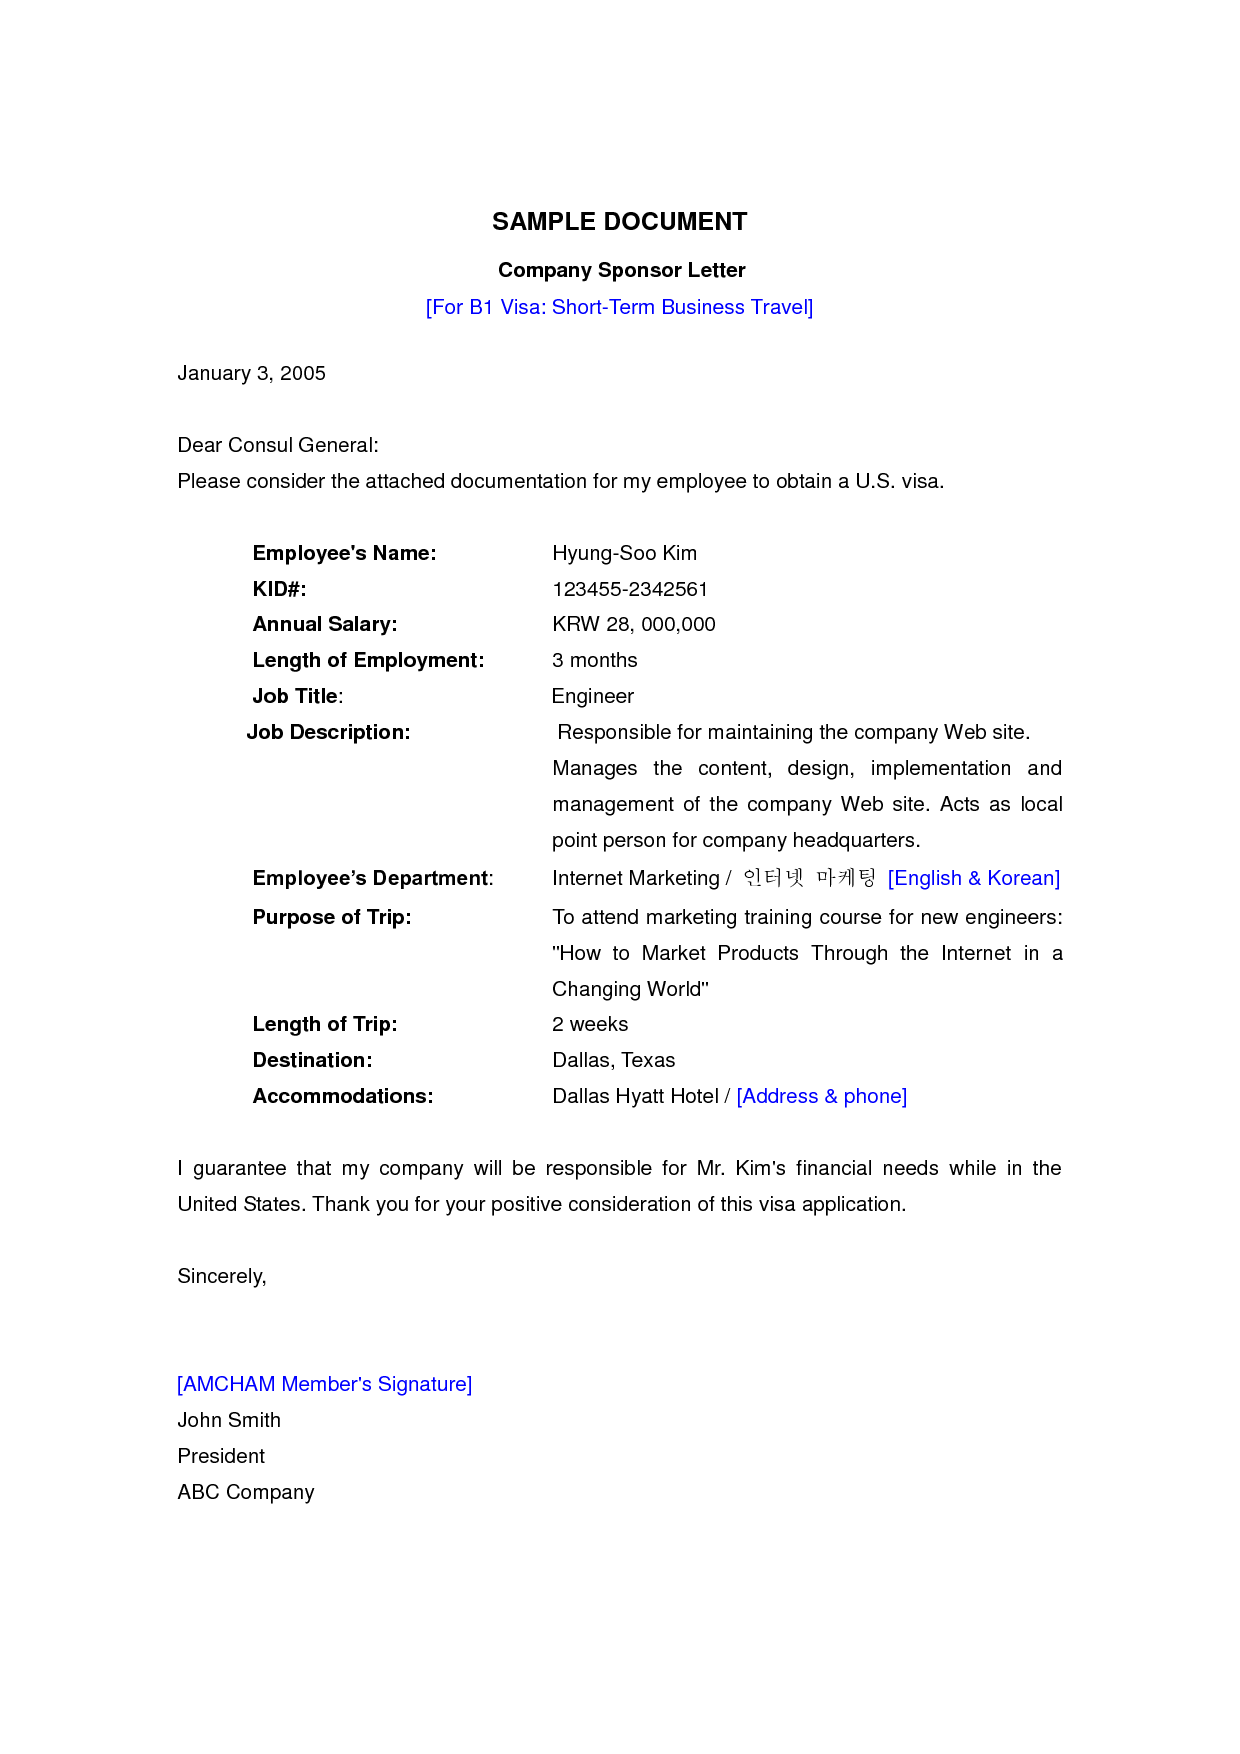 Sample Employment Letter For Uk Visitor Visa 4